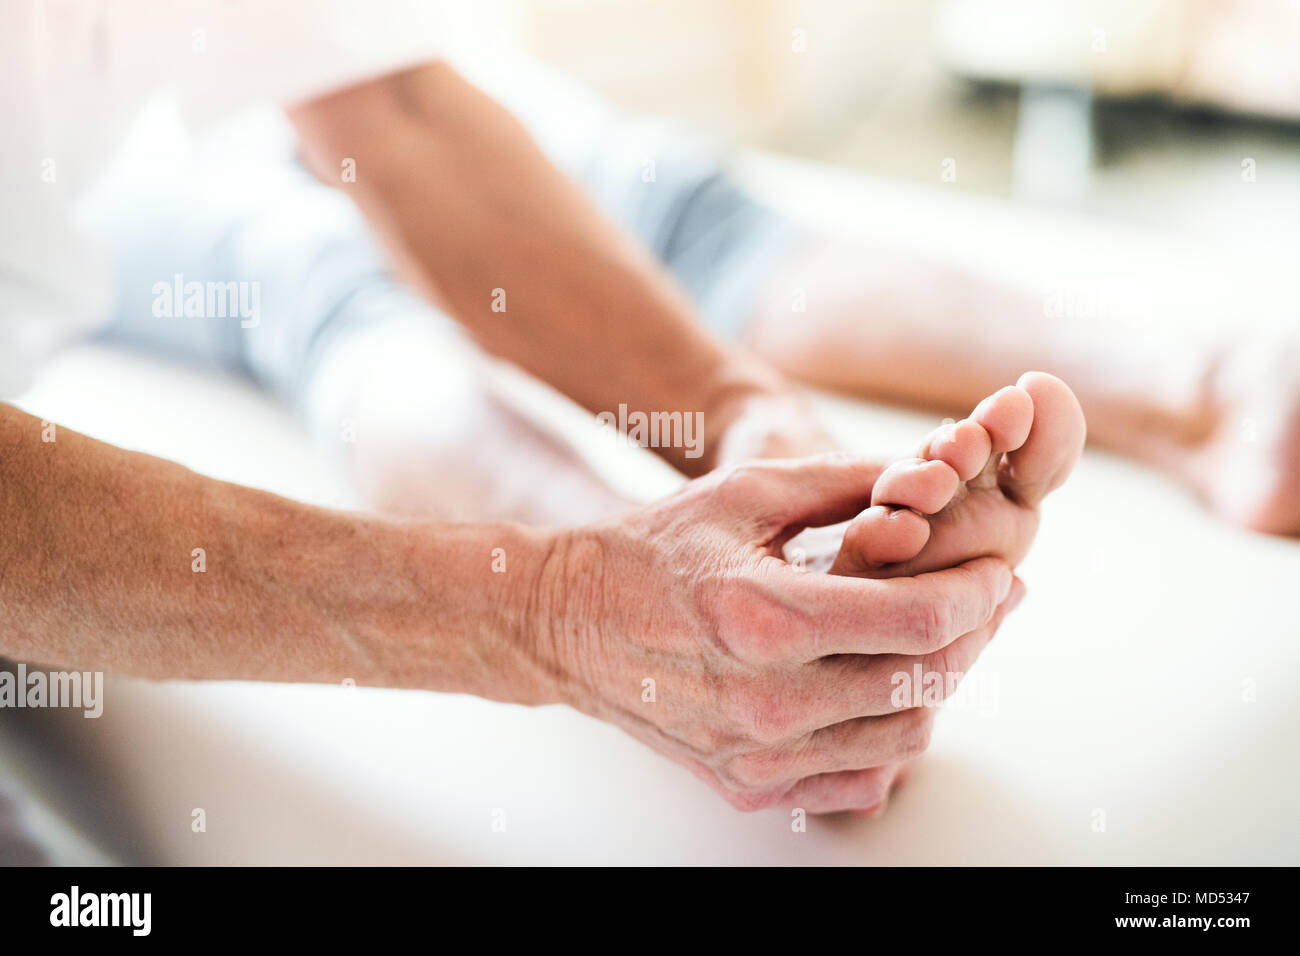 A physiotherapist working with a patient. - Stock Image